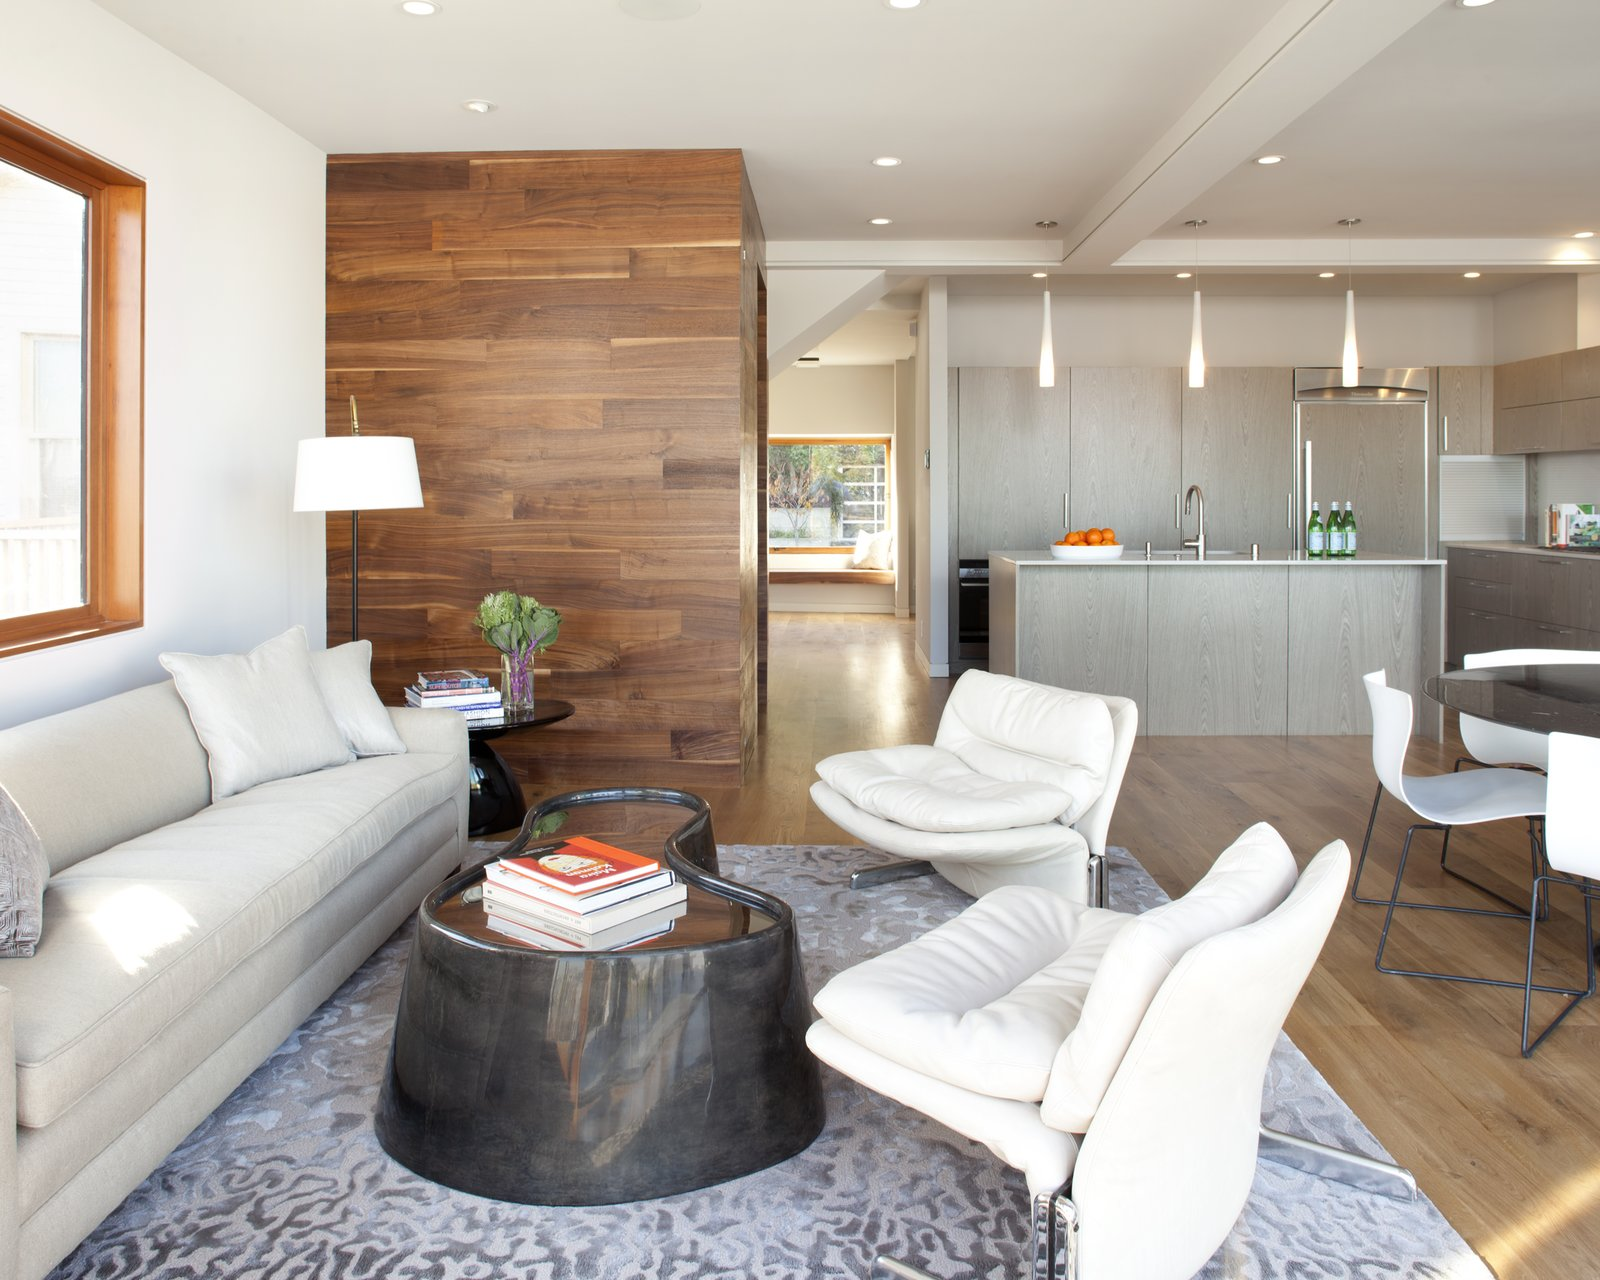 Living Room, Chair, Light Hardwood Floor, Sofa, and Accent Lighting walnut wall cladding quantum windows  Bungalow Update by McElroy Architecture